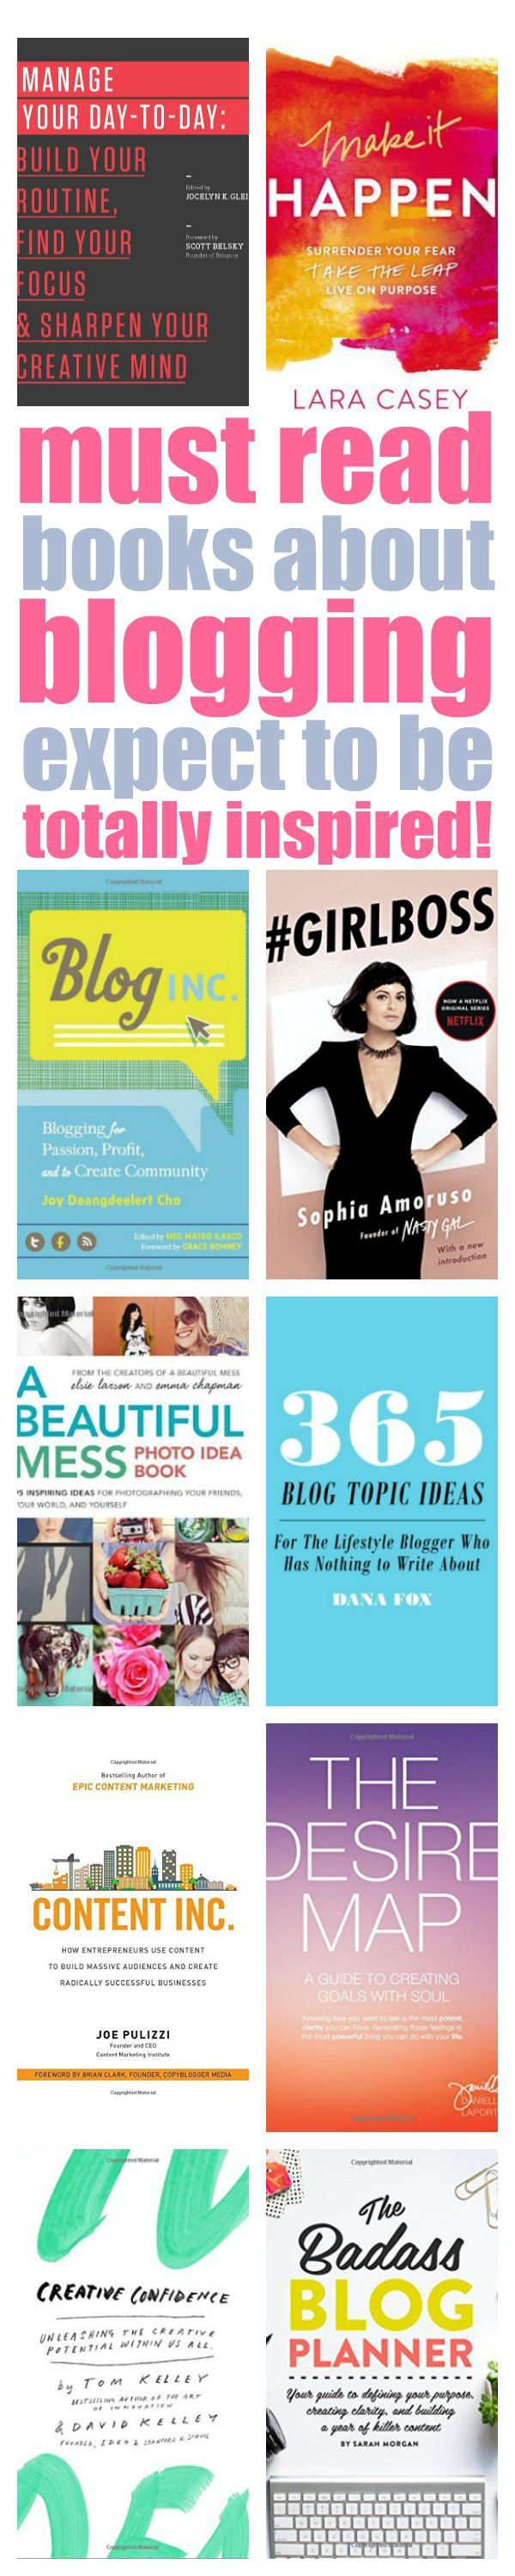 books about blogging that are inspiring and informative.